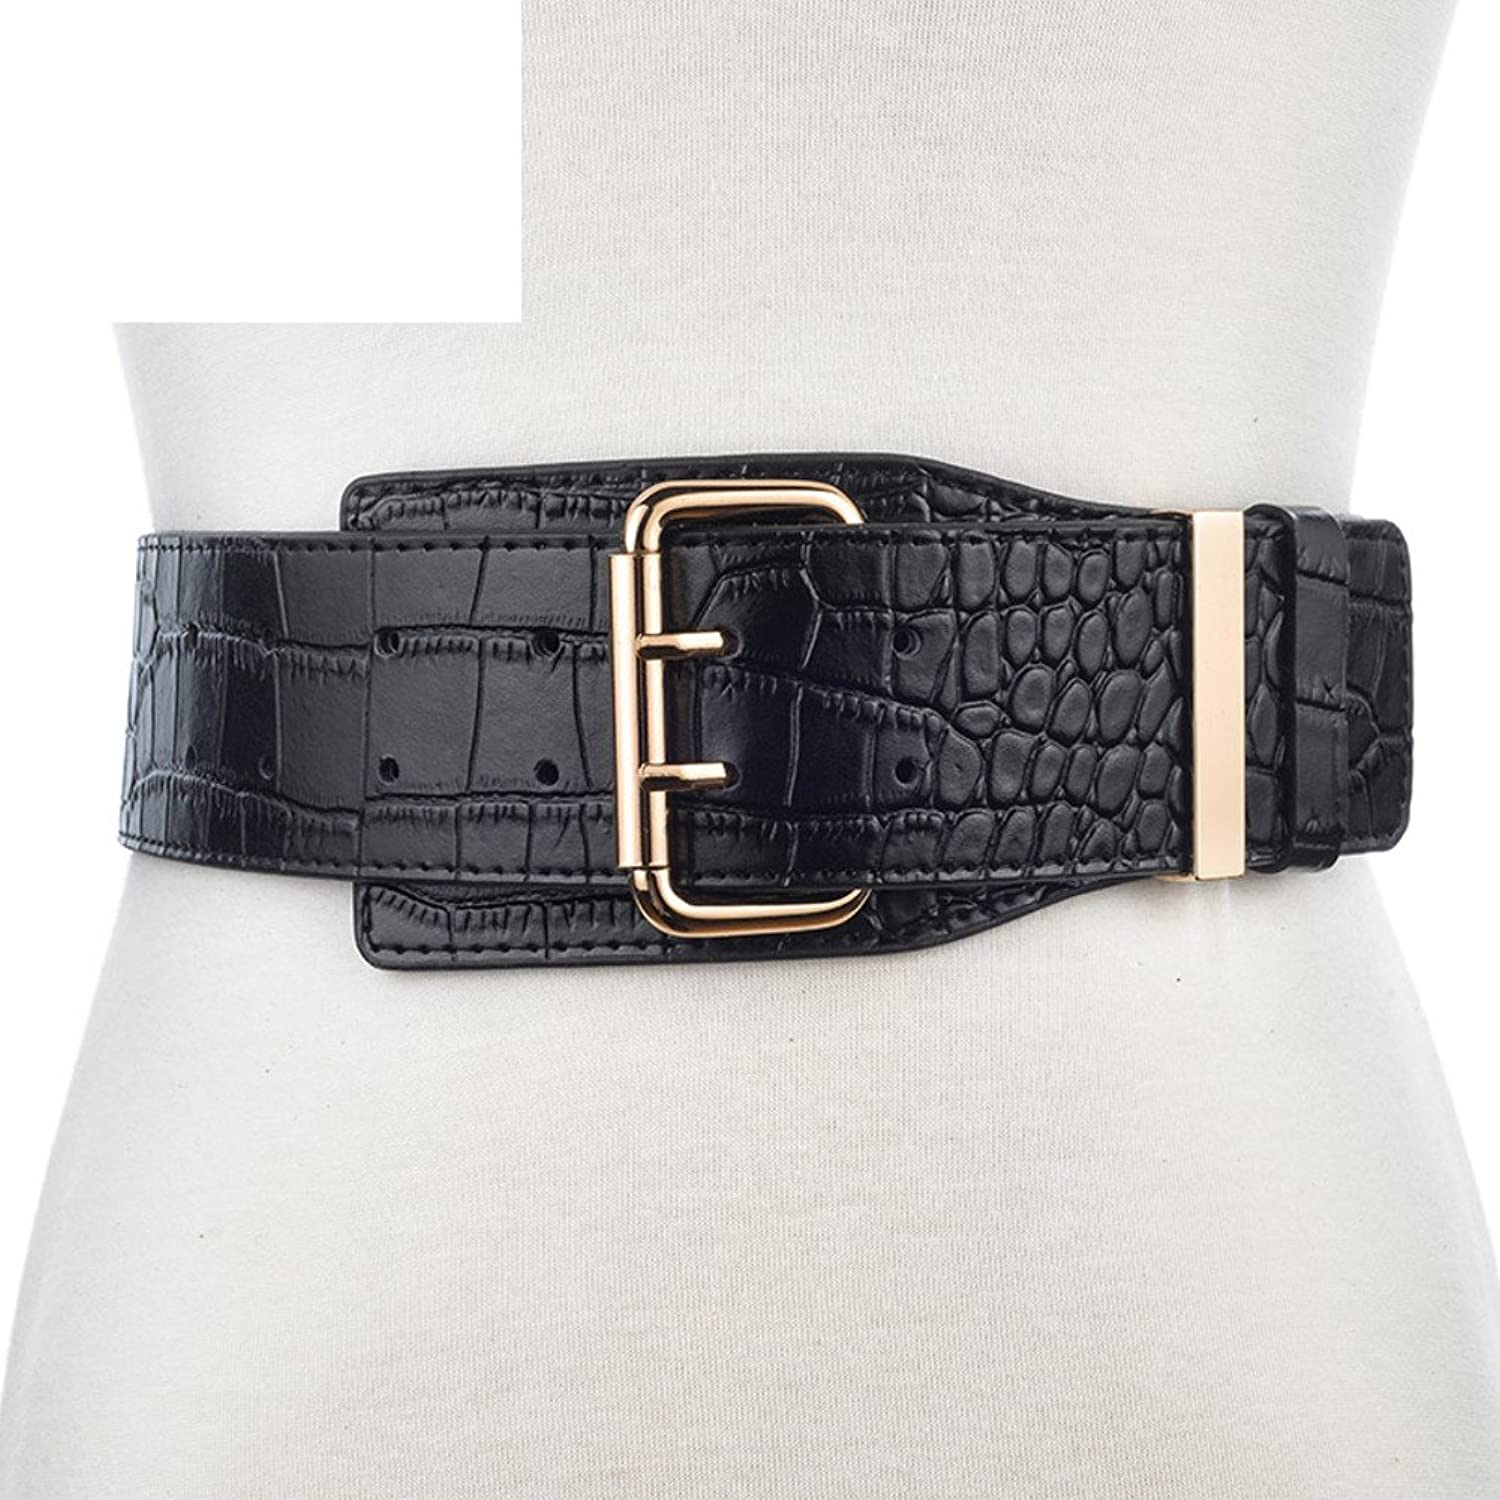 Decorative Girdle And Leisure BeltBlack 87cm(34inch)